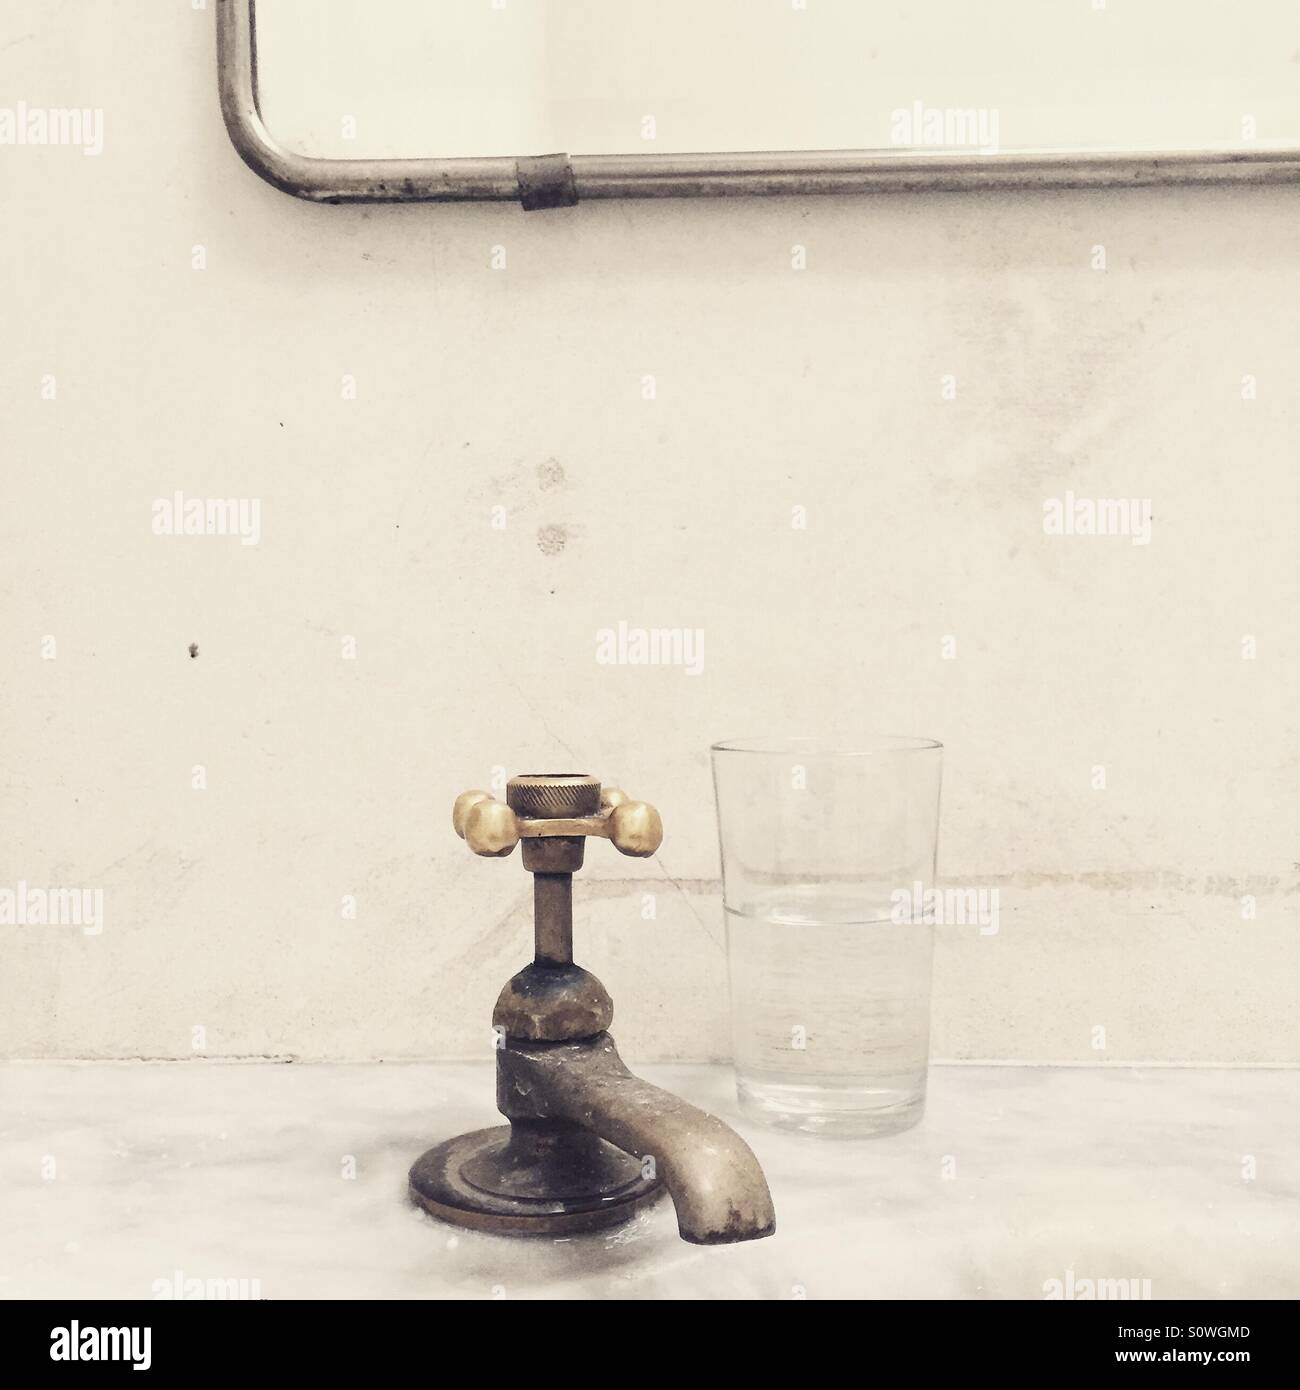 Vintage bathroom faucet Stock Photo: 310348541 - Alamy